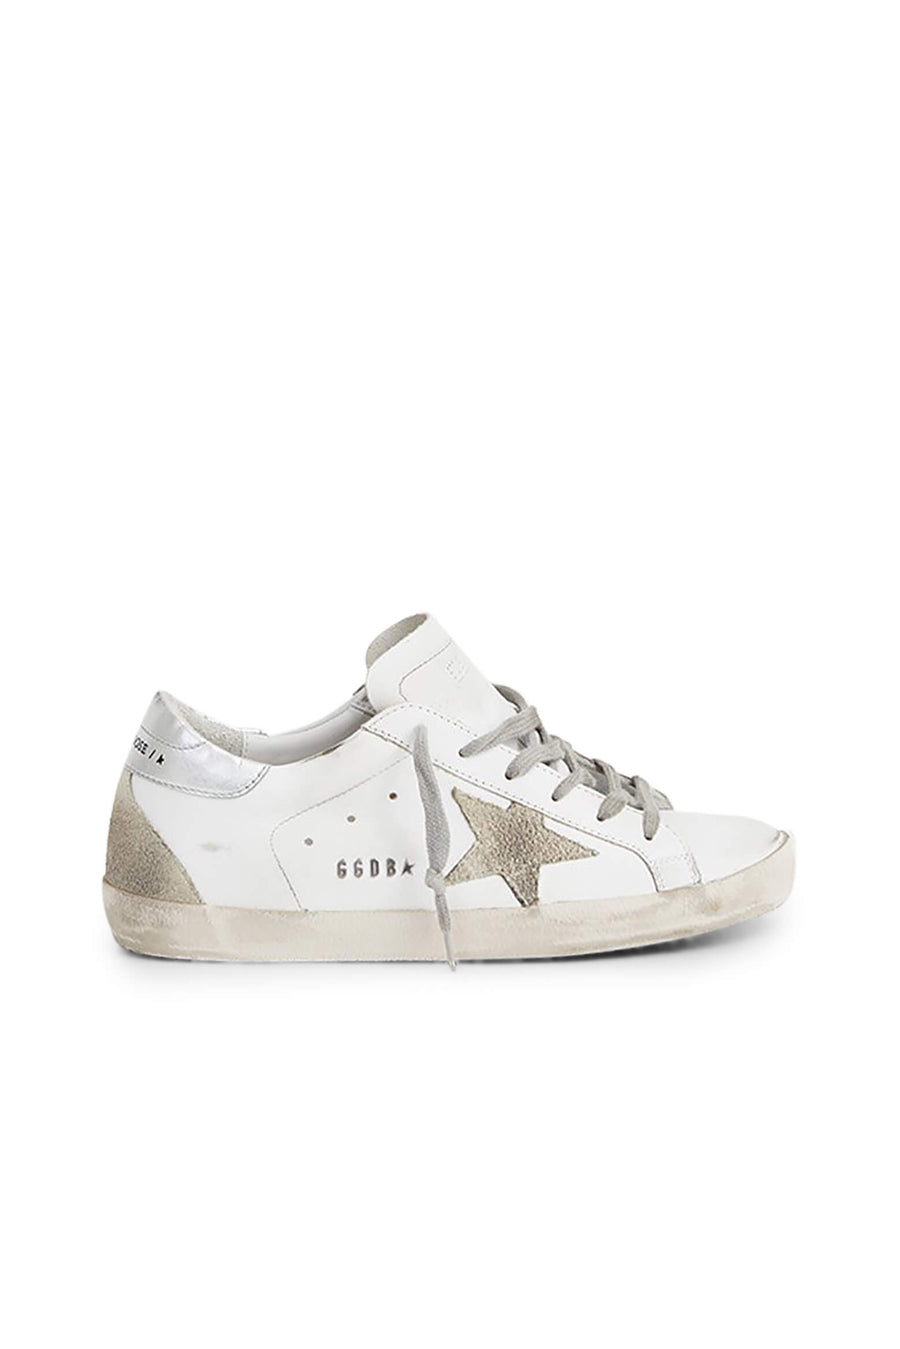 Golden Goose Superstar Sneakers in White Ice Silver from The New Trend